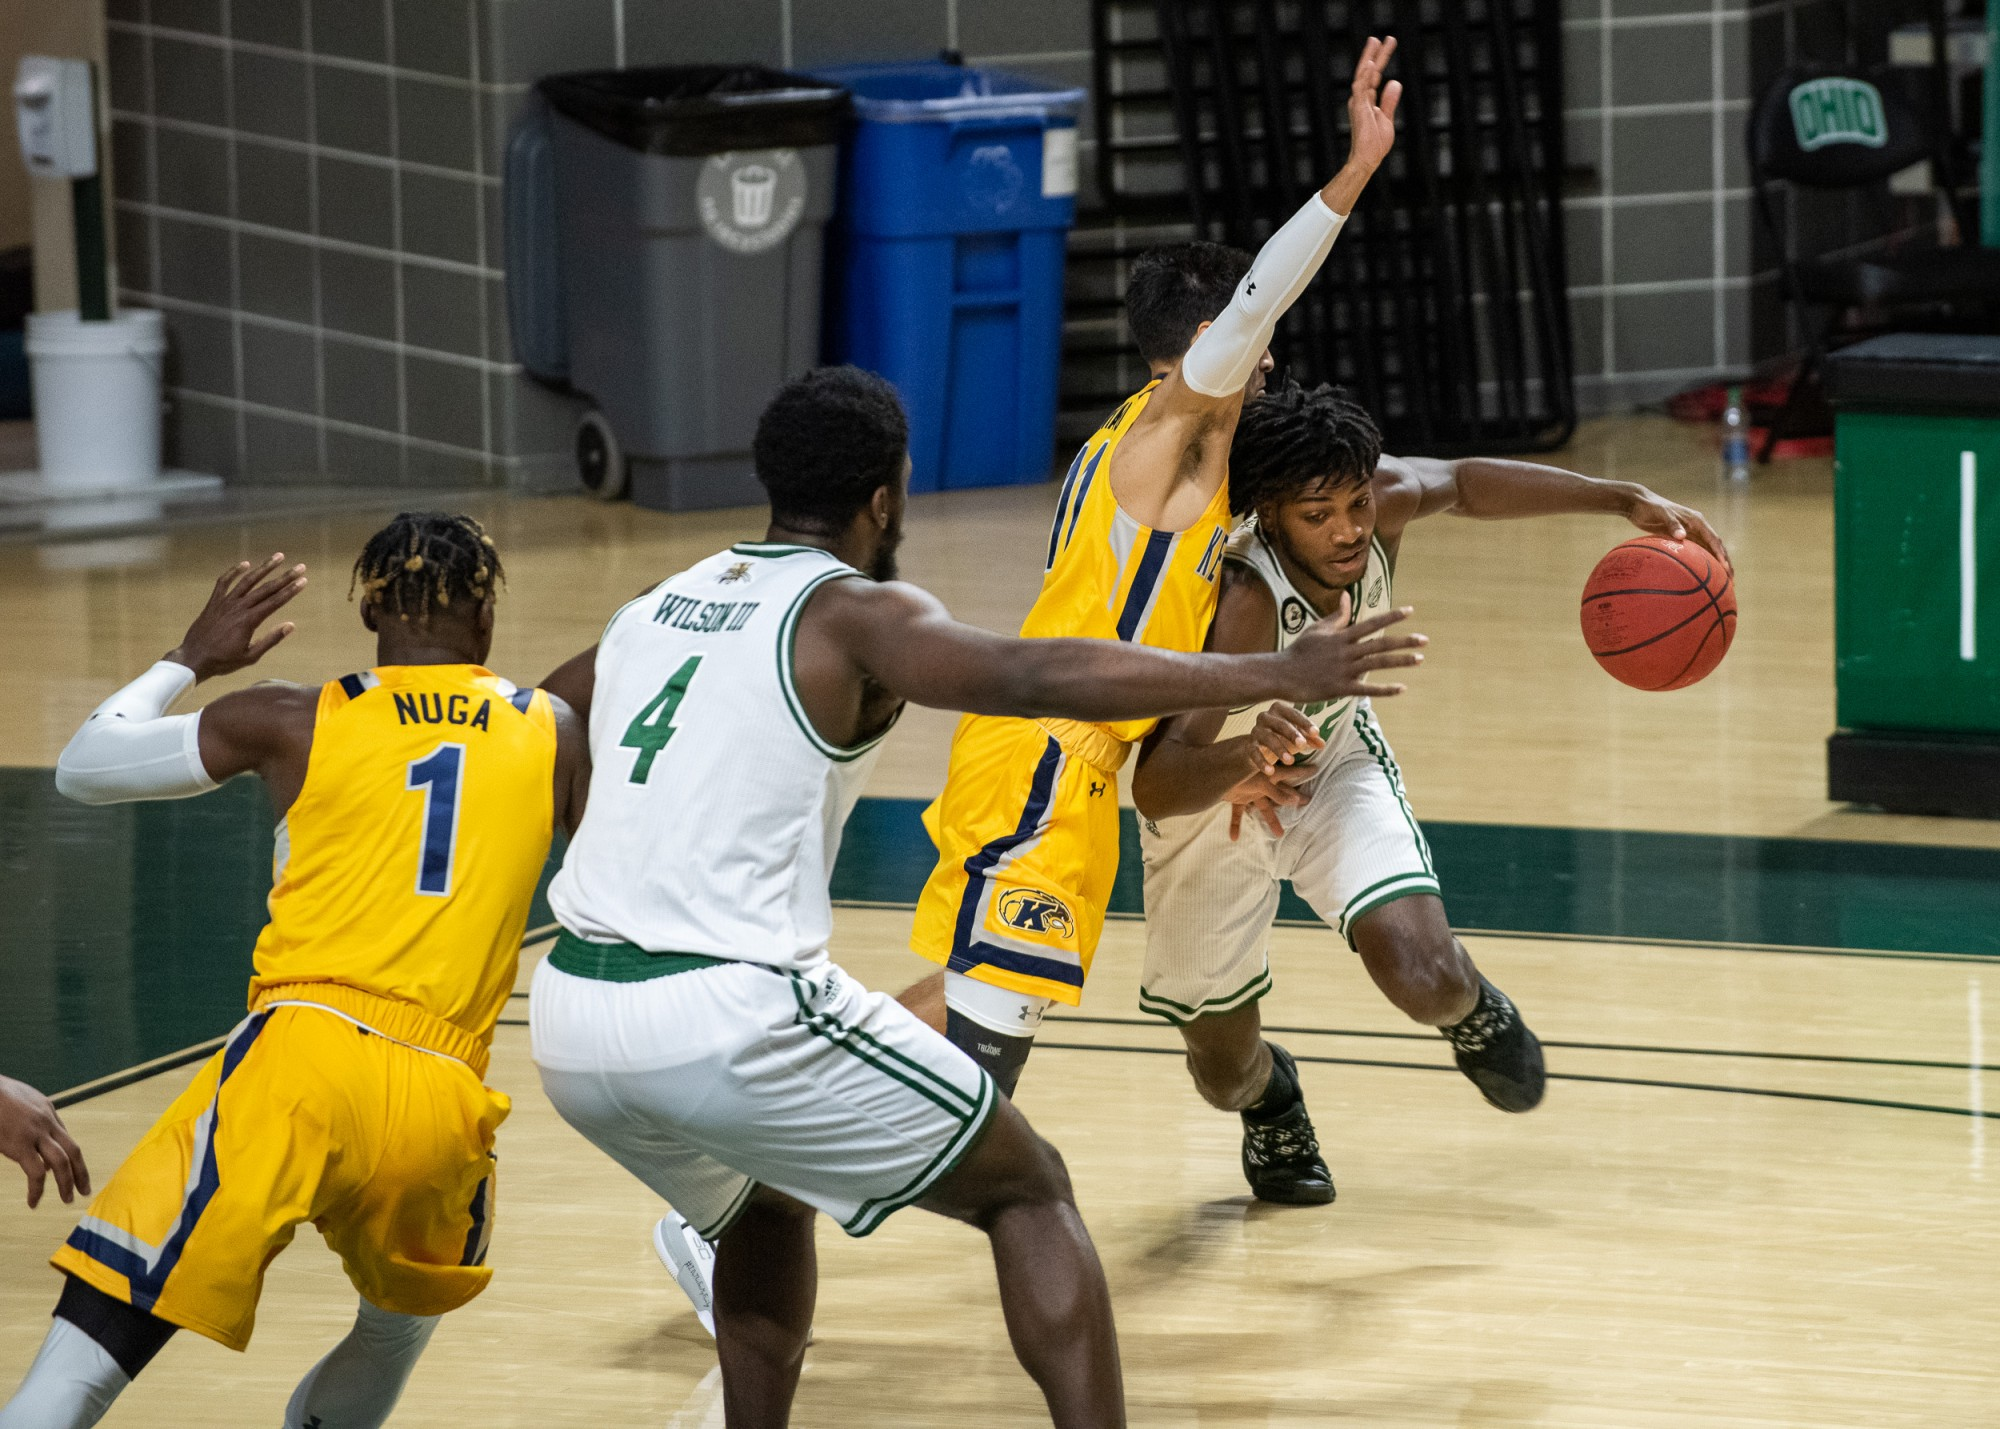 Ohio University guard Lunden McDay (15) drives to the basket while Kent State guard Giovanni Santiago (11) tries to stop him on Saturday, Jan. 16, 2021 at the Convocation Center. Ohio University lost 89- 79 to Kent State.